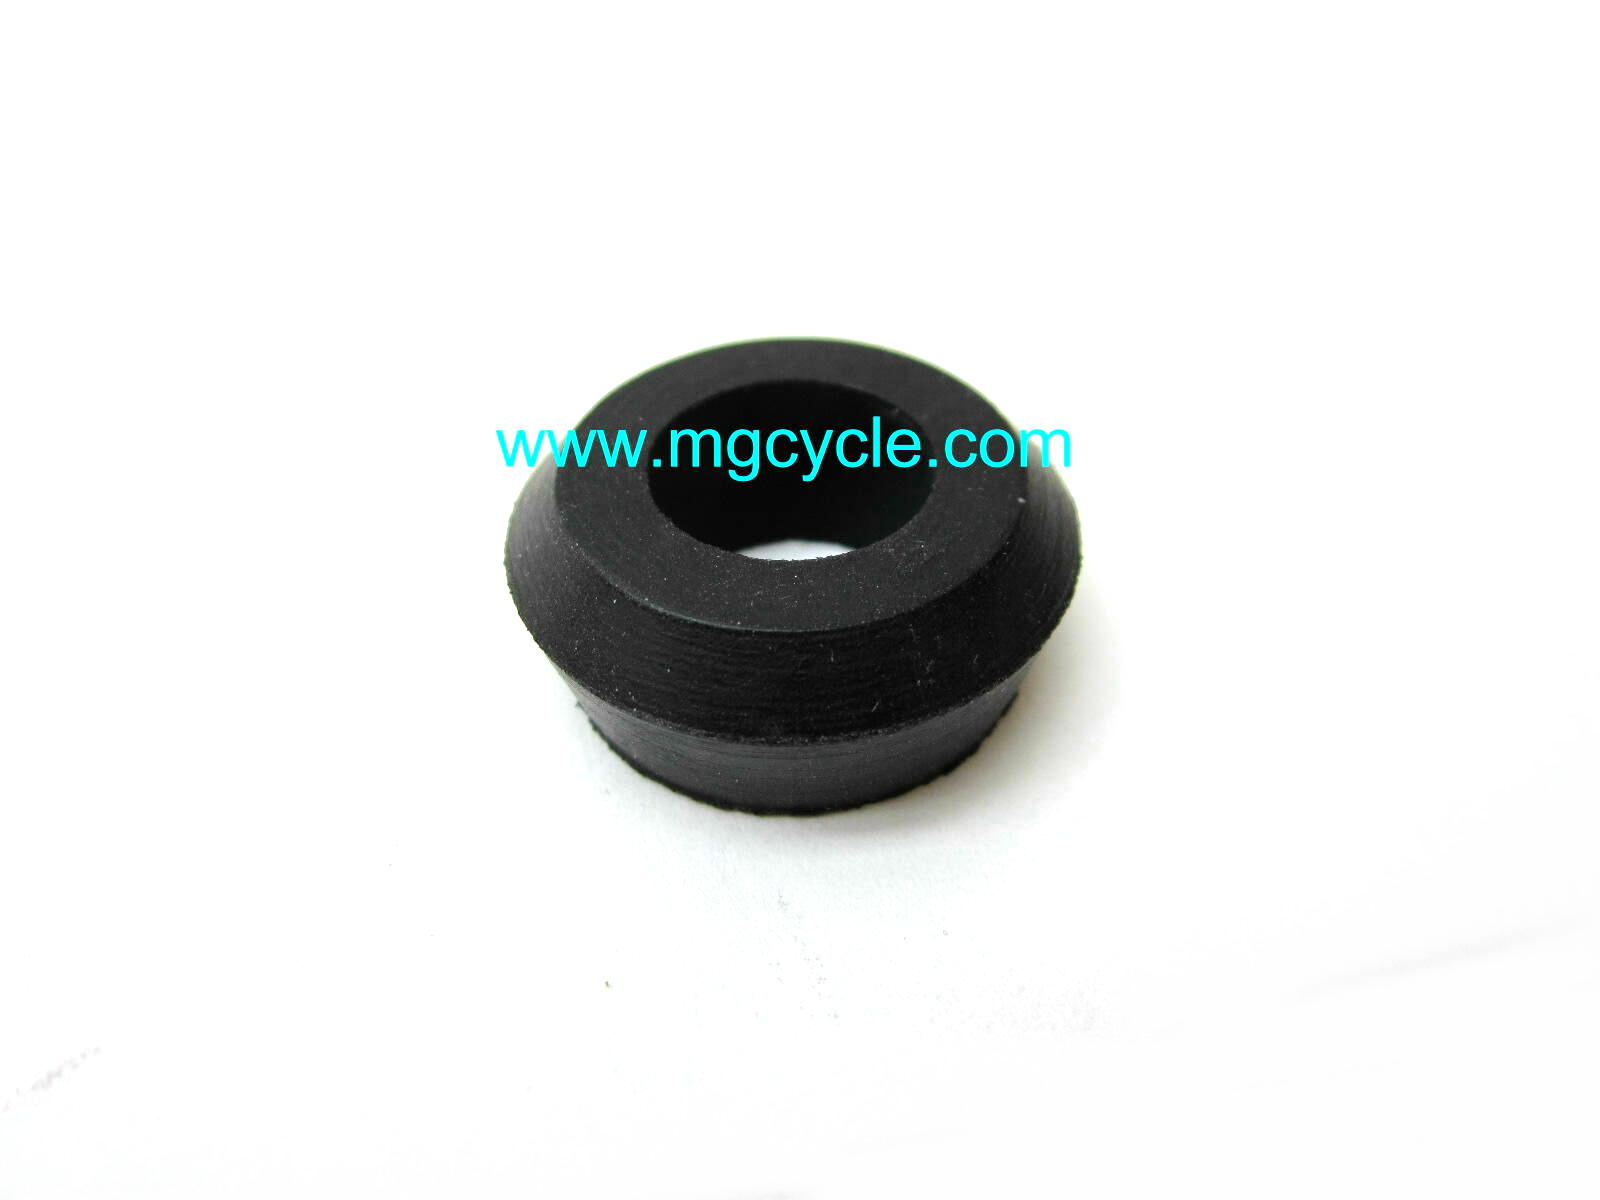 instrument console, seat pivot, 12mm shock rubber bushing